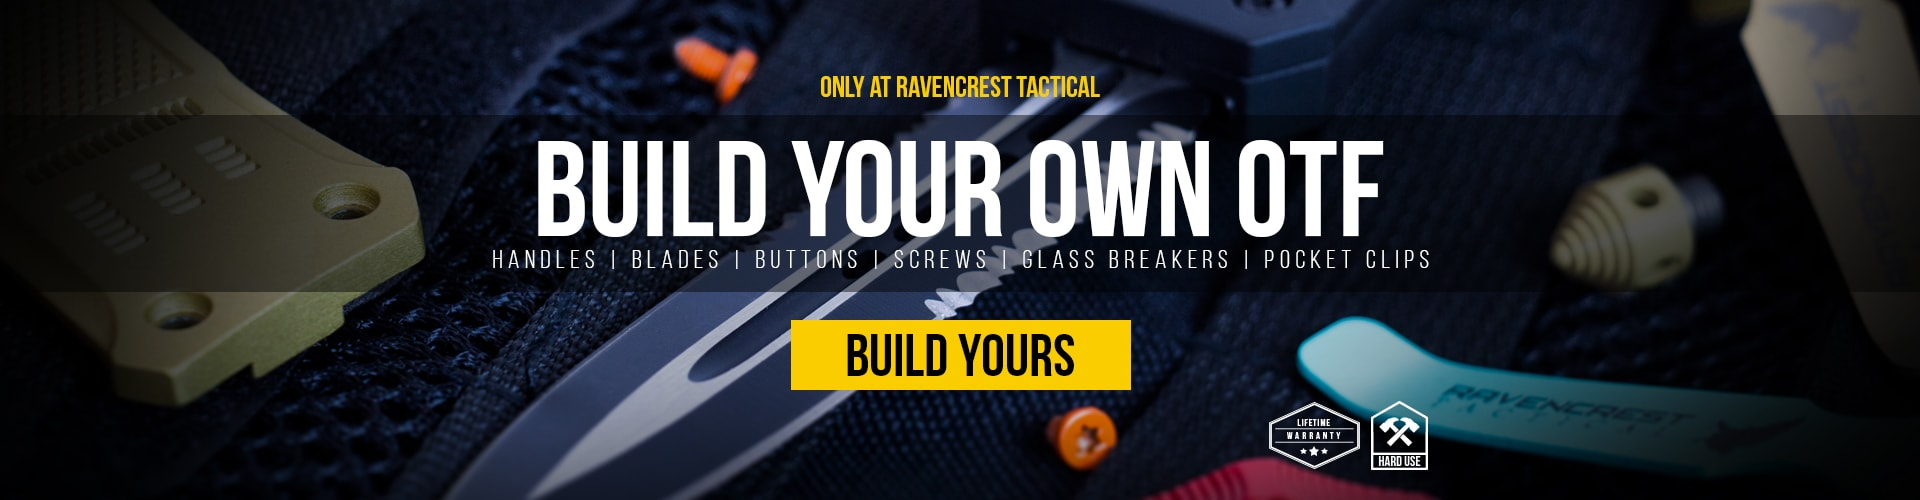 Build Your Own Custom RavenCrest Tactical OTF Knife